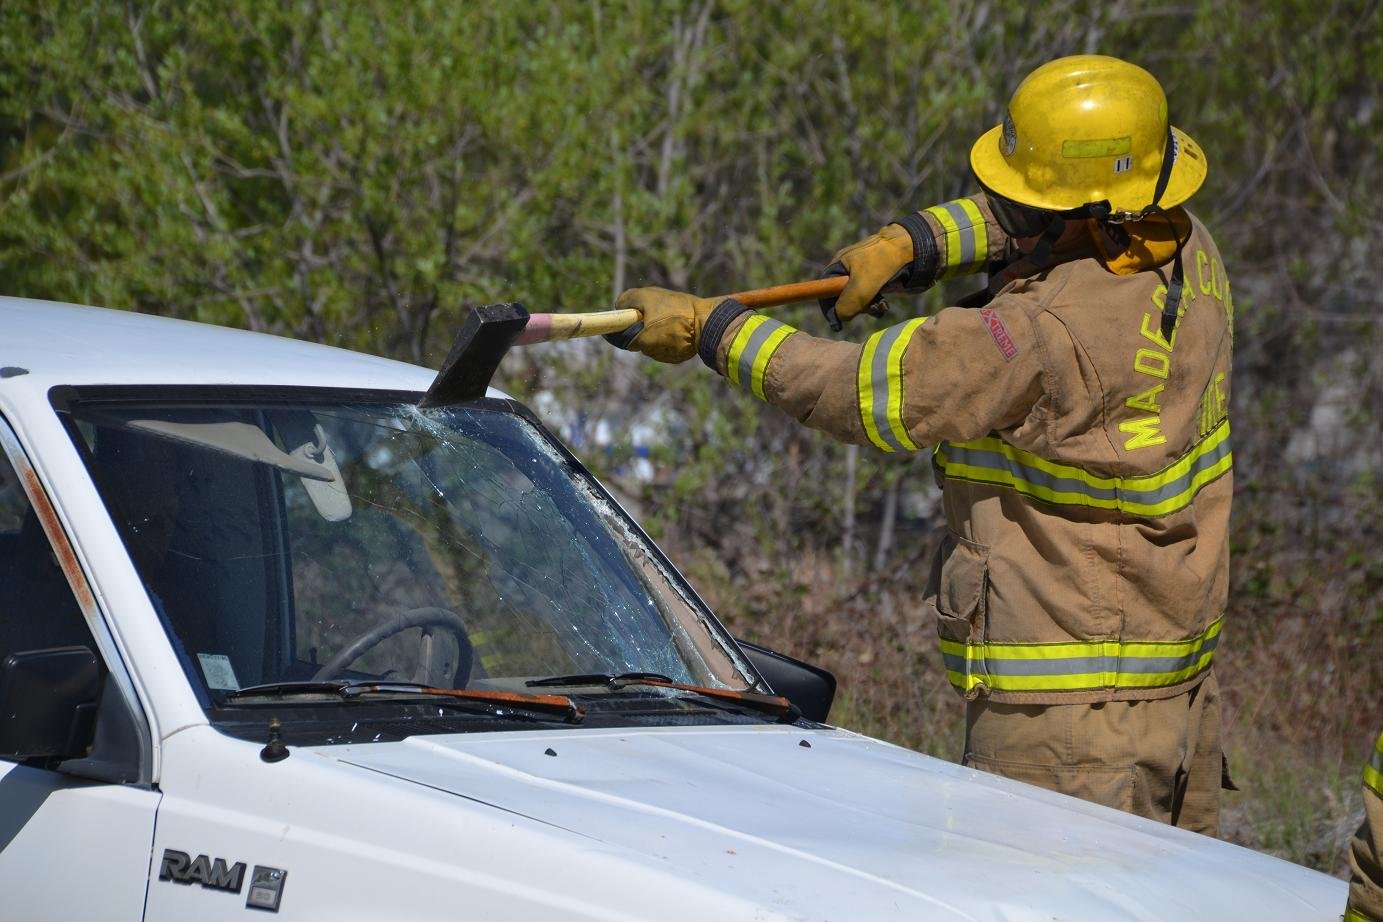 Cutting out the windshield with an axe - photo by Gina Clugston